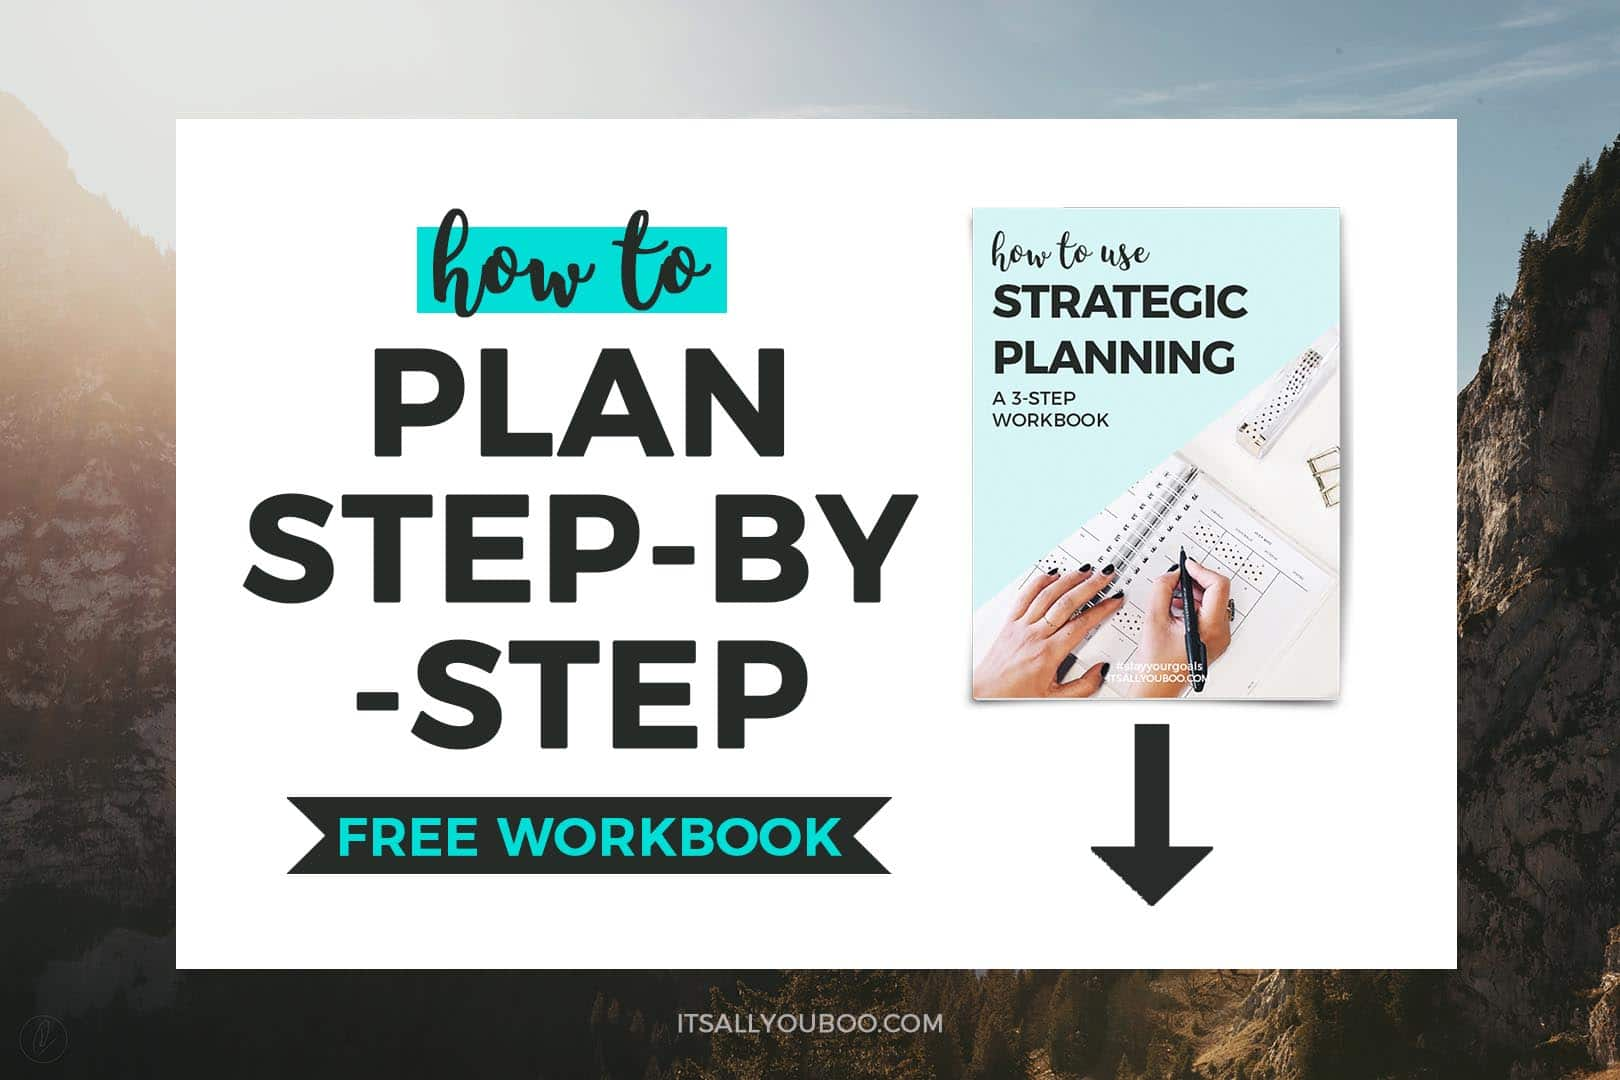 How to Plan Step-by-Step FREE WORKBOOK